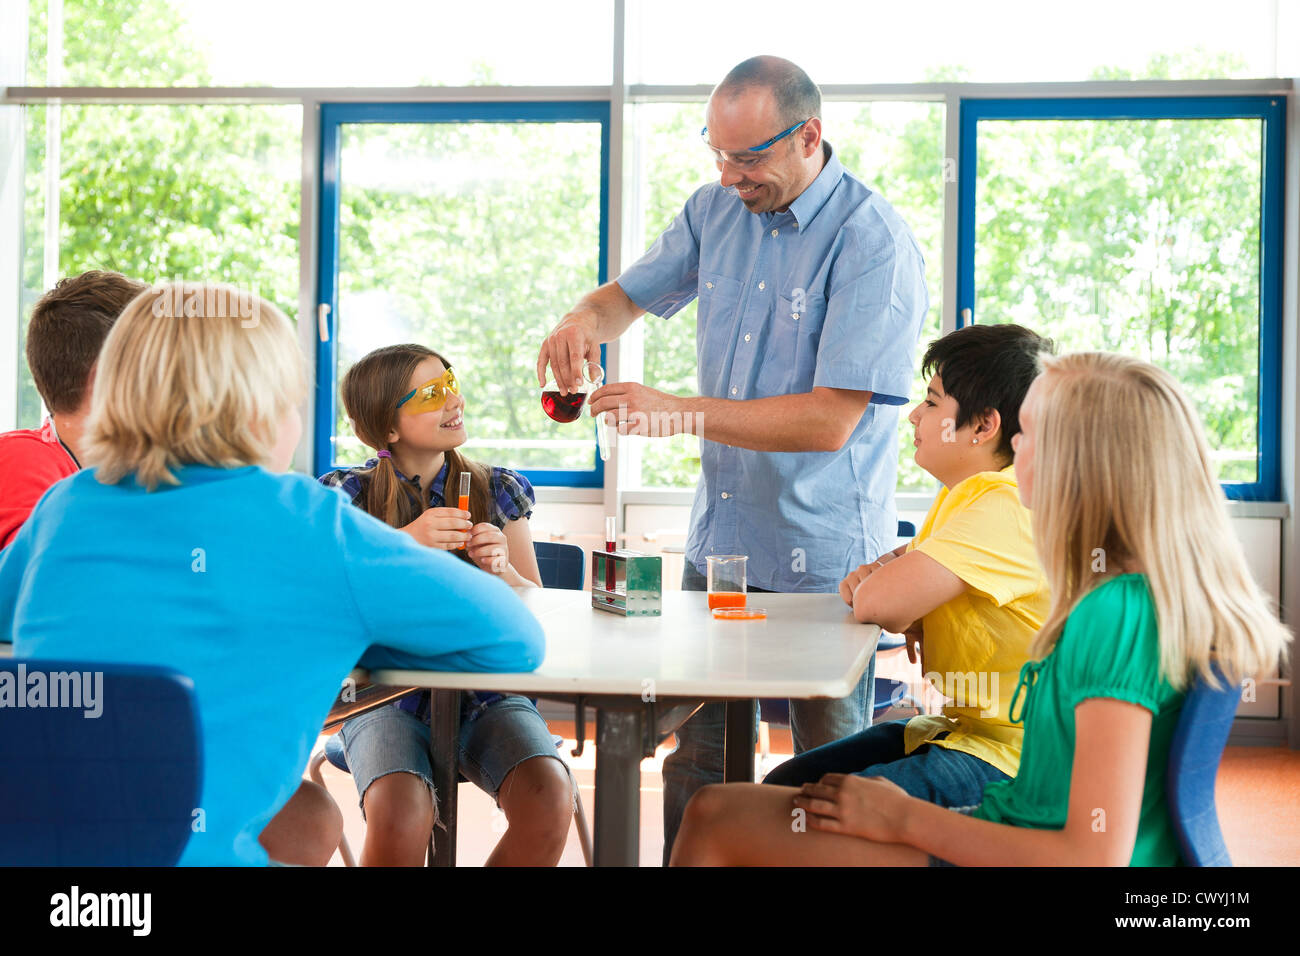 Teacher and pupils experimenting in chemical class - Stock Image